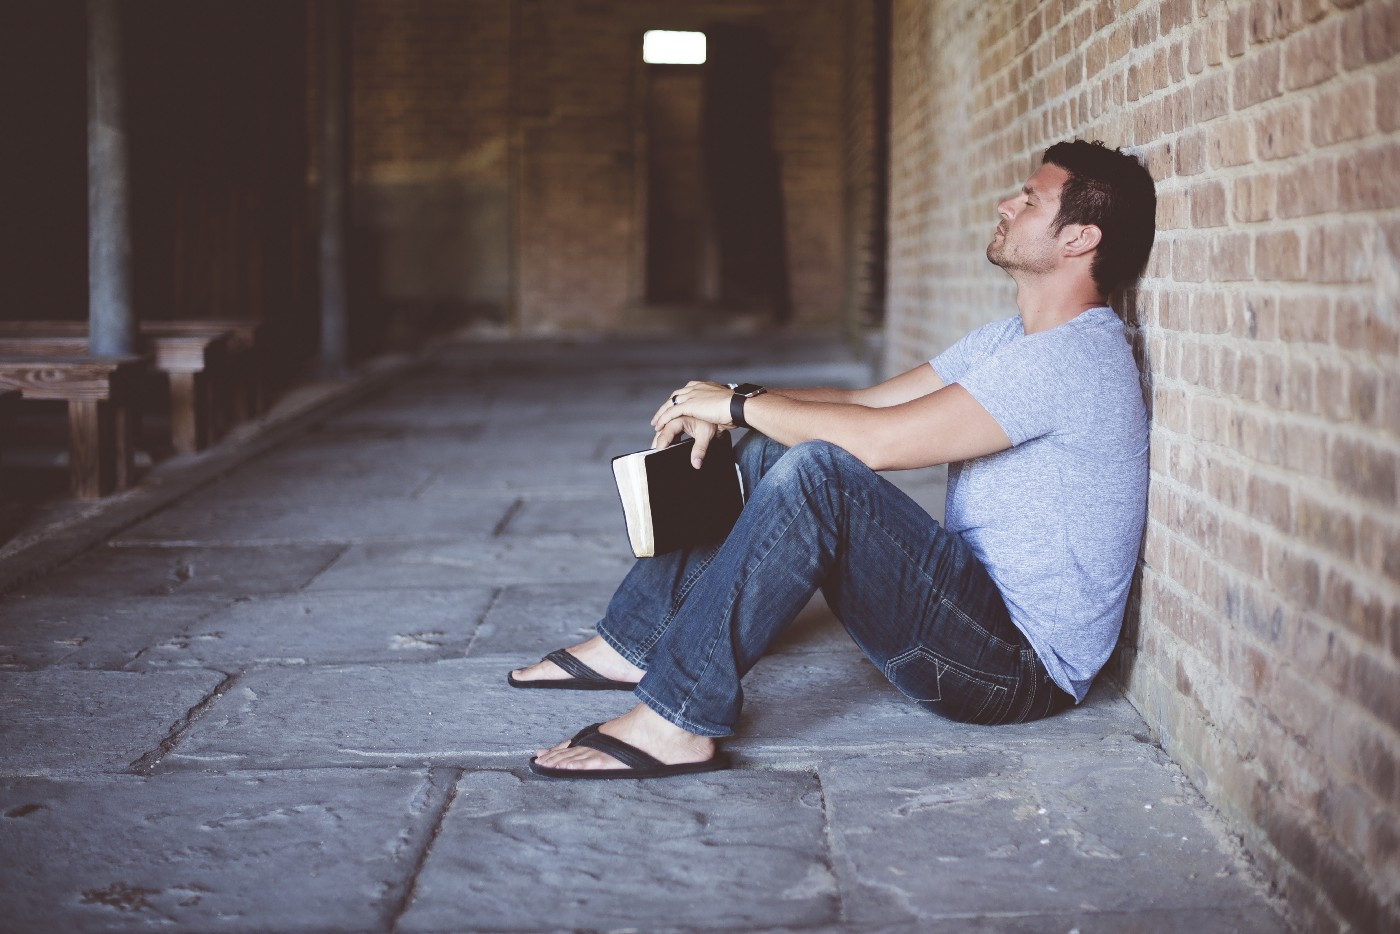 Man sitting against a wall with a book in his hand. He looks lost and mentally drained.